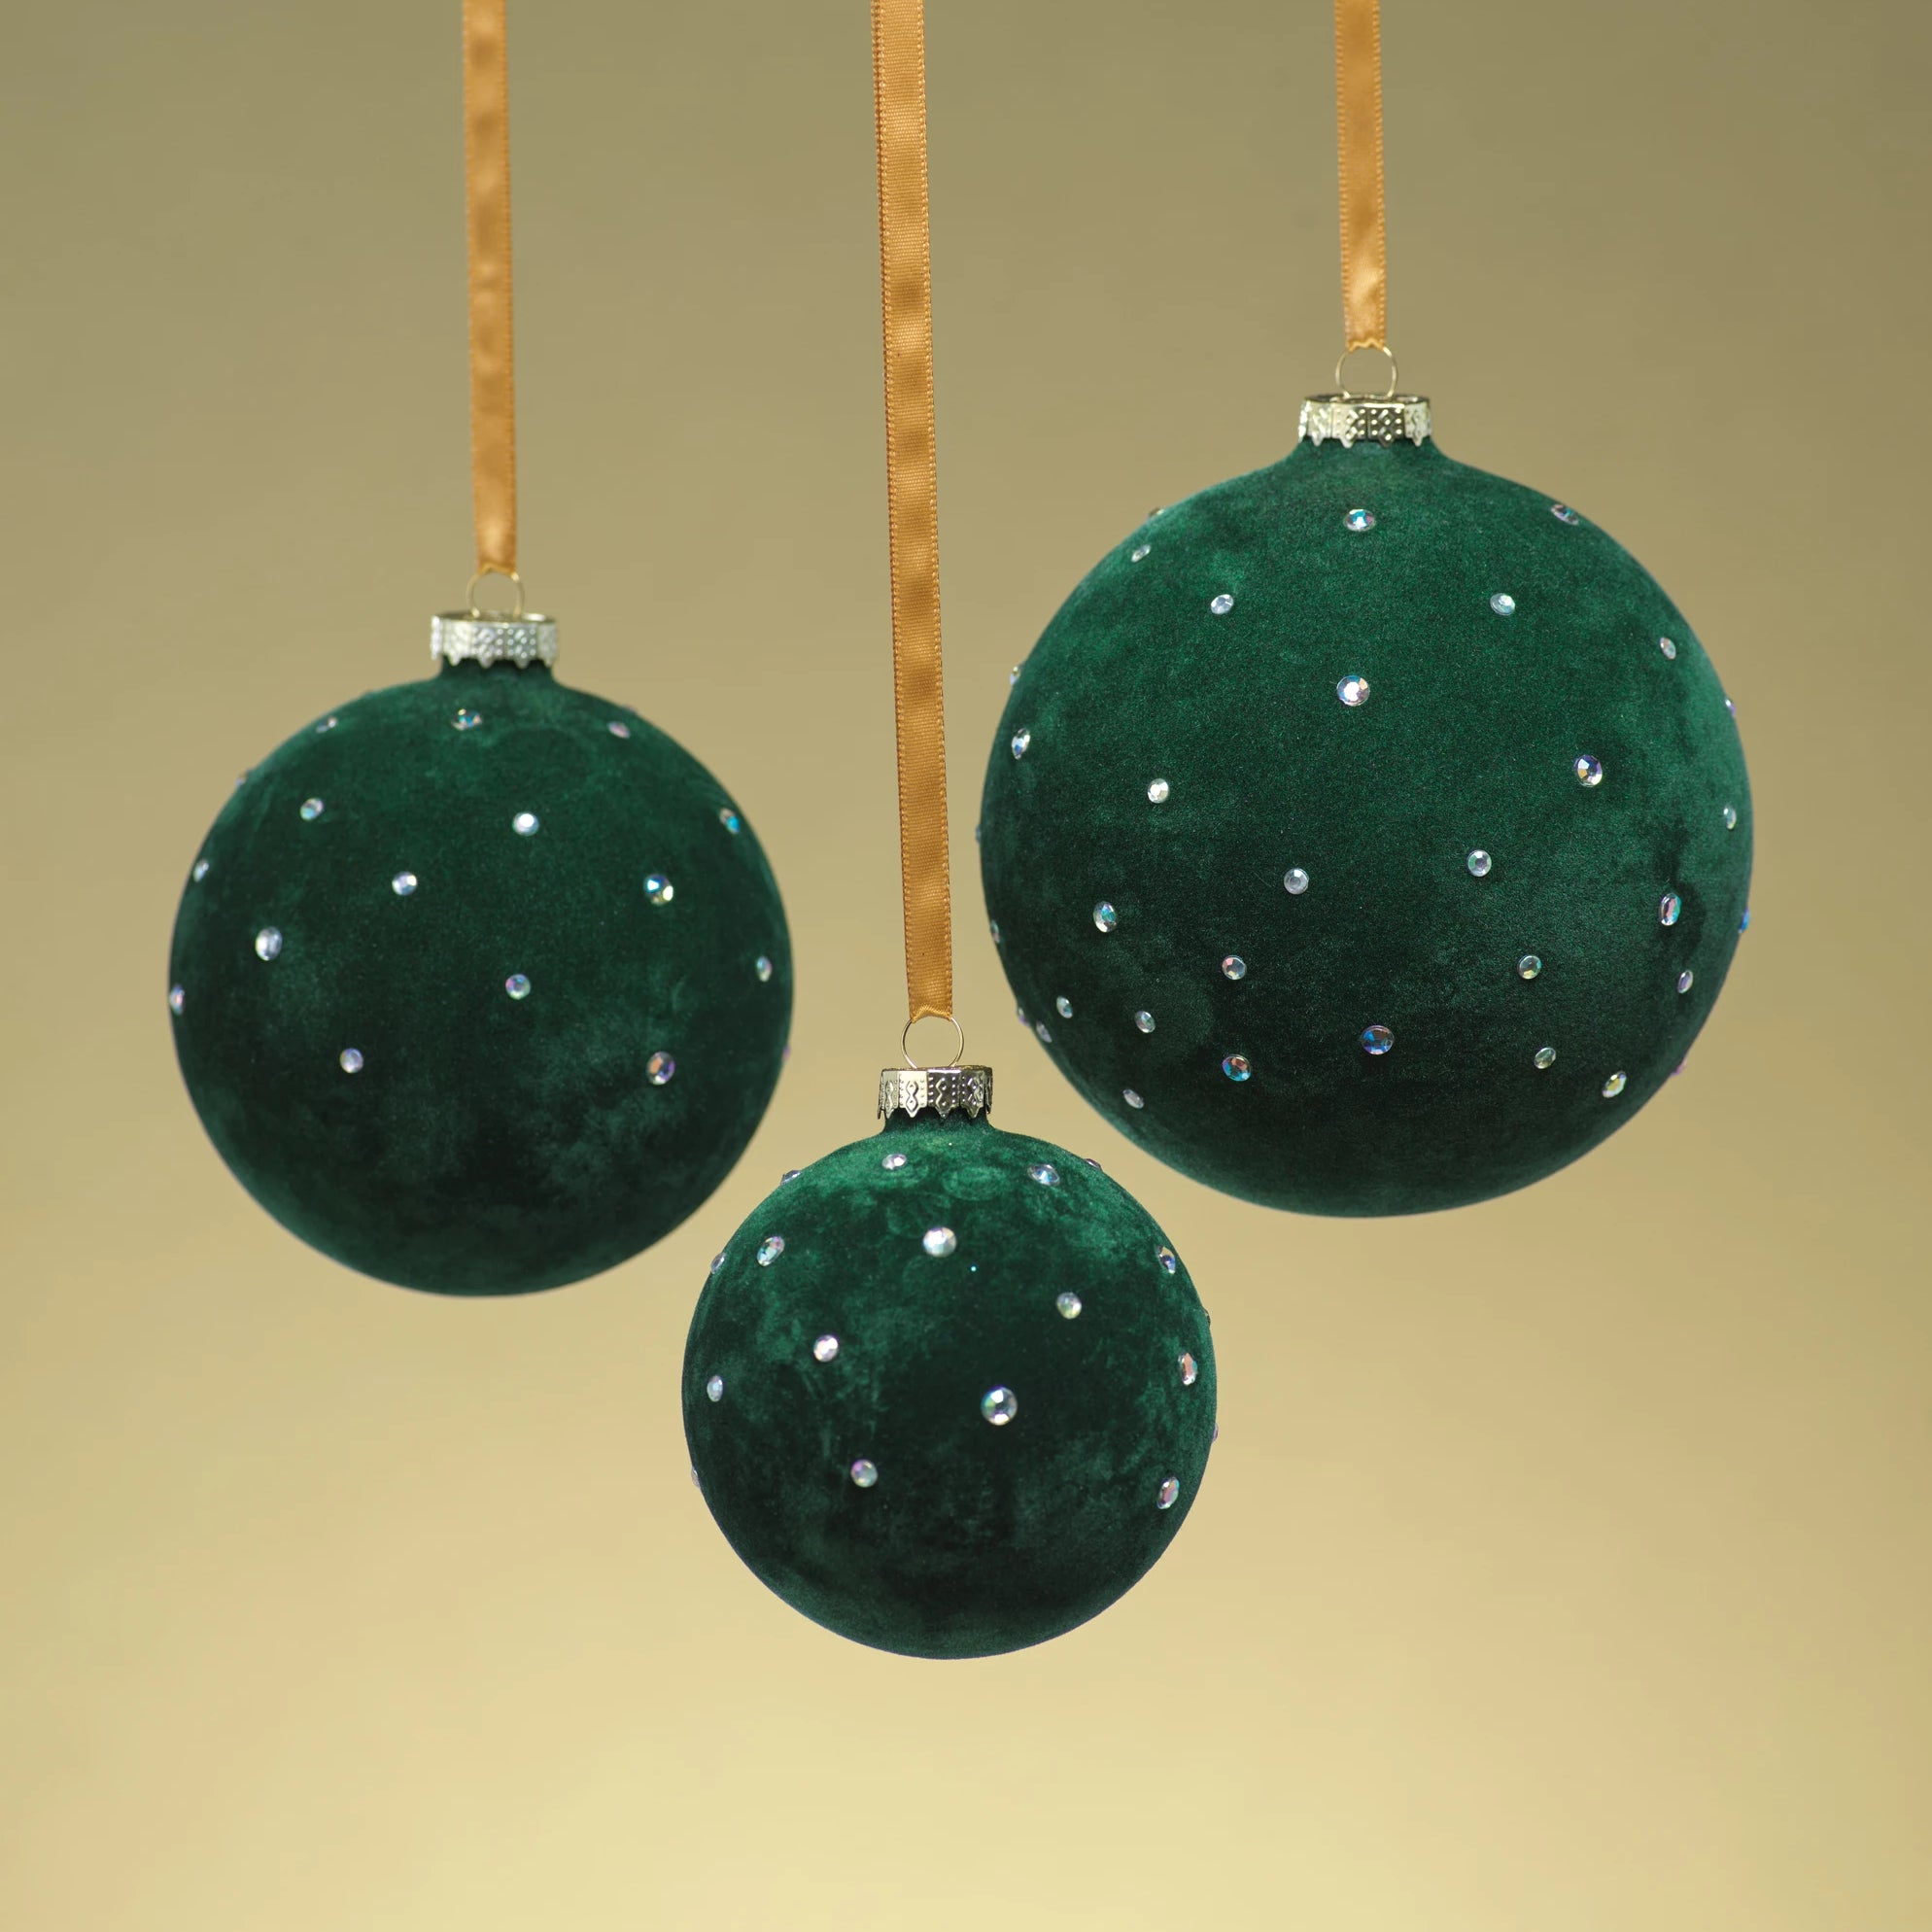 Flocked Ornament w/ Clear Studs - CARLYLE AVENUE